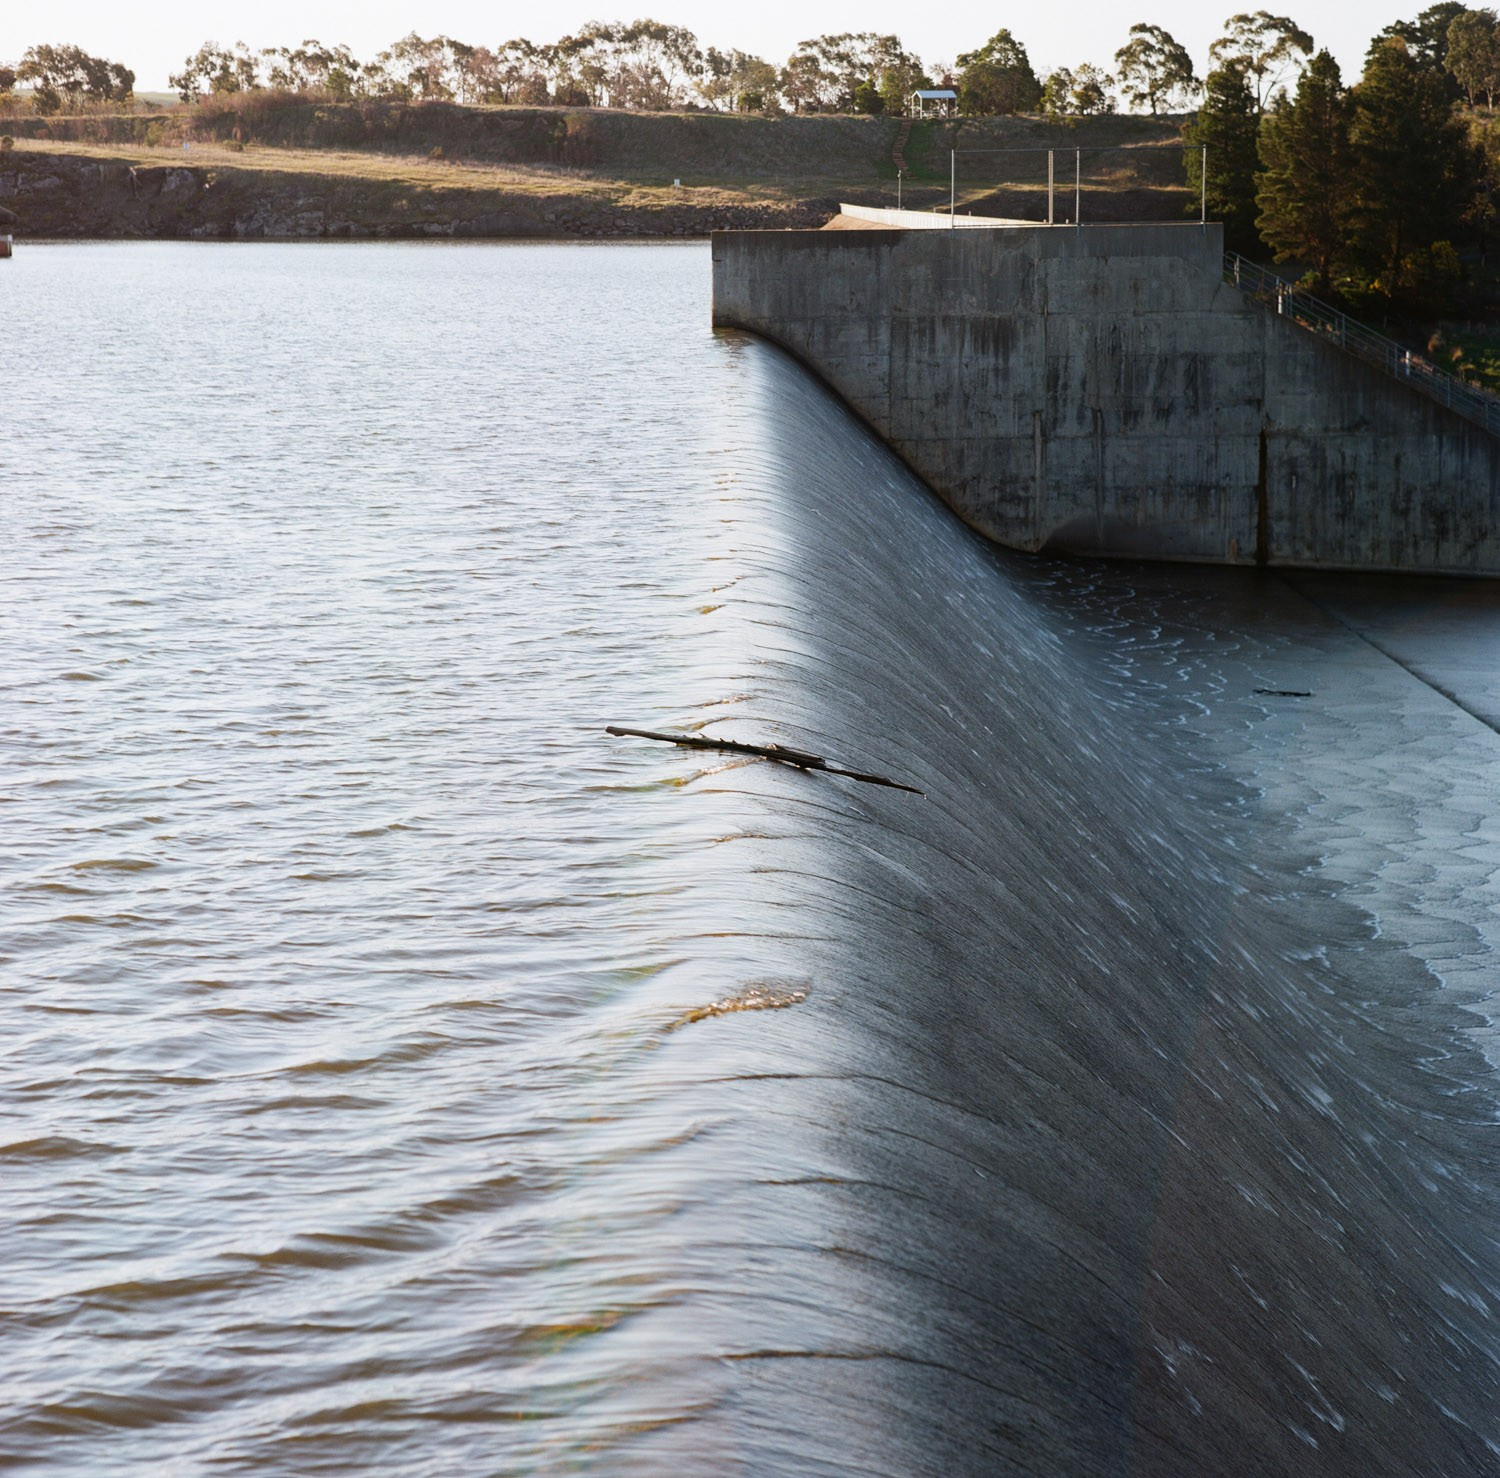 The spillway  Film: Kodak Ektar 100 Lens: 150mm f/2.8 Exposure: not recorded.   Coliban reservoir spillway, near Lauriston, Vic, Australia